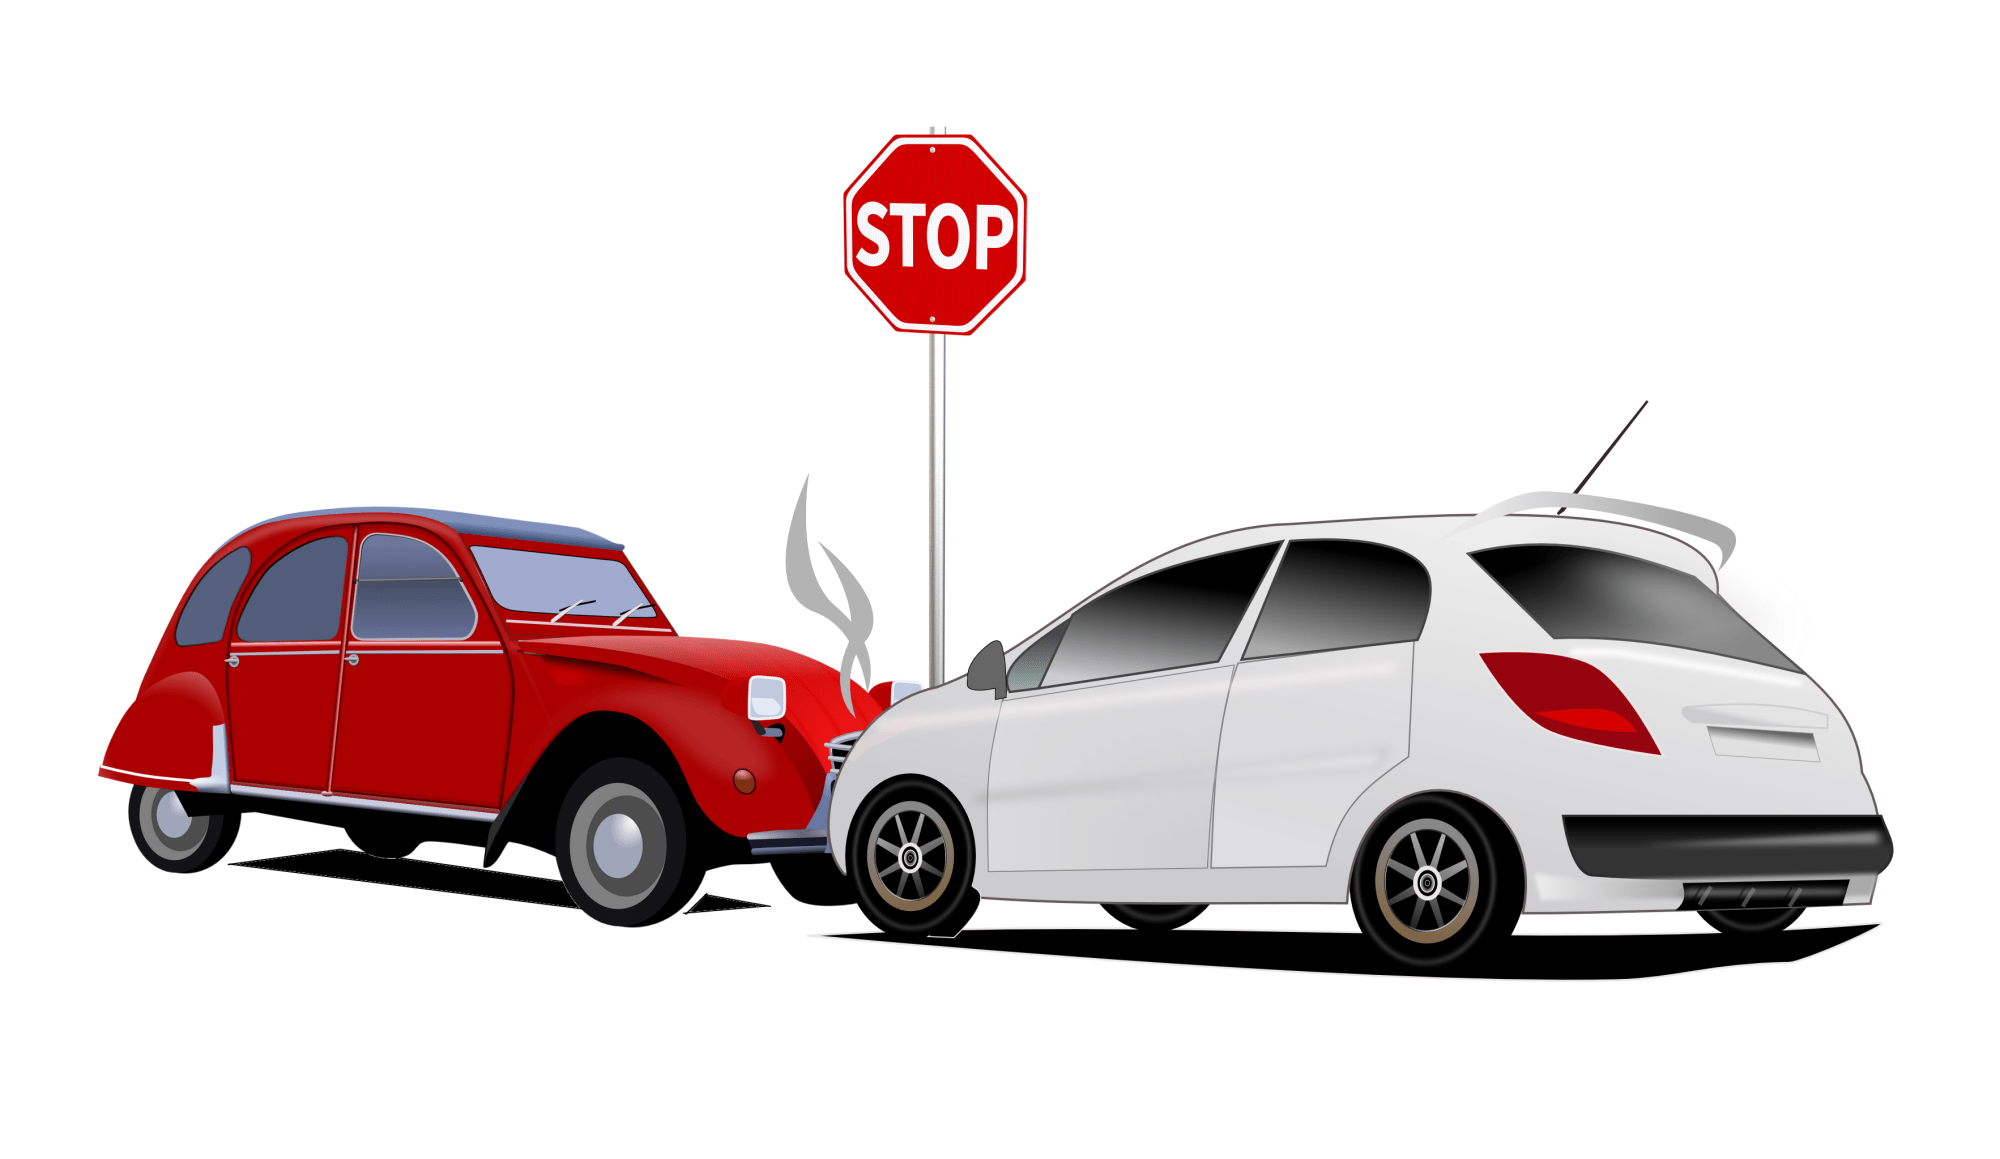 Can An Insurance Company Force You to Total Your Car?